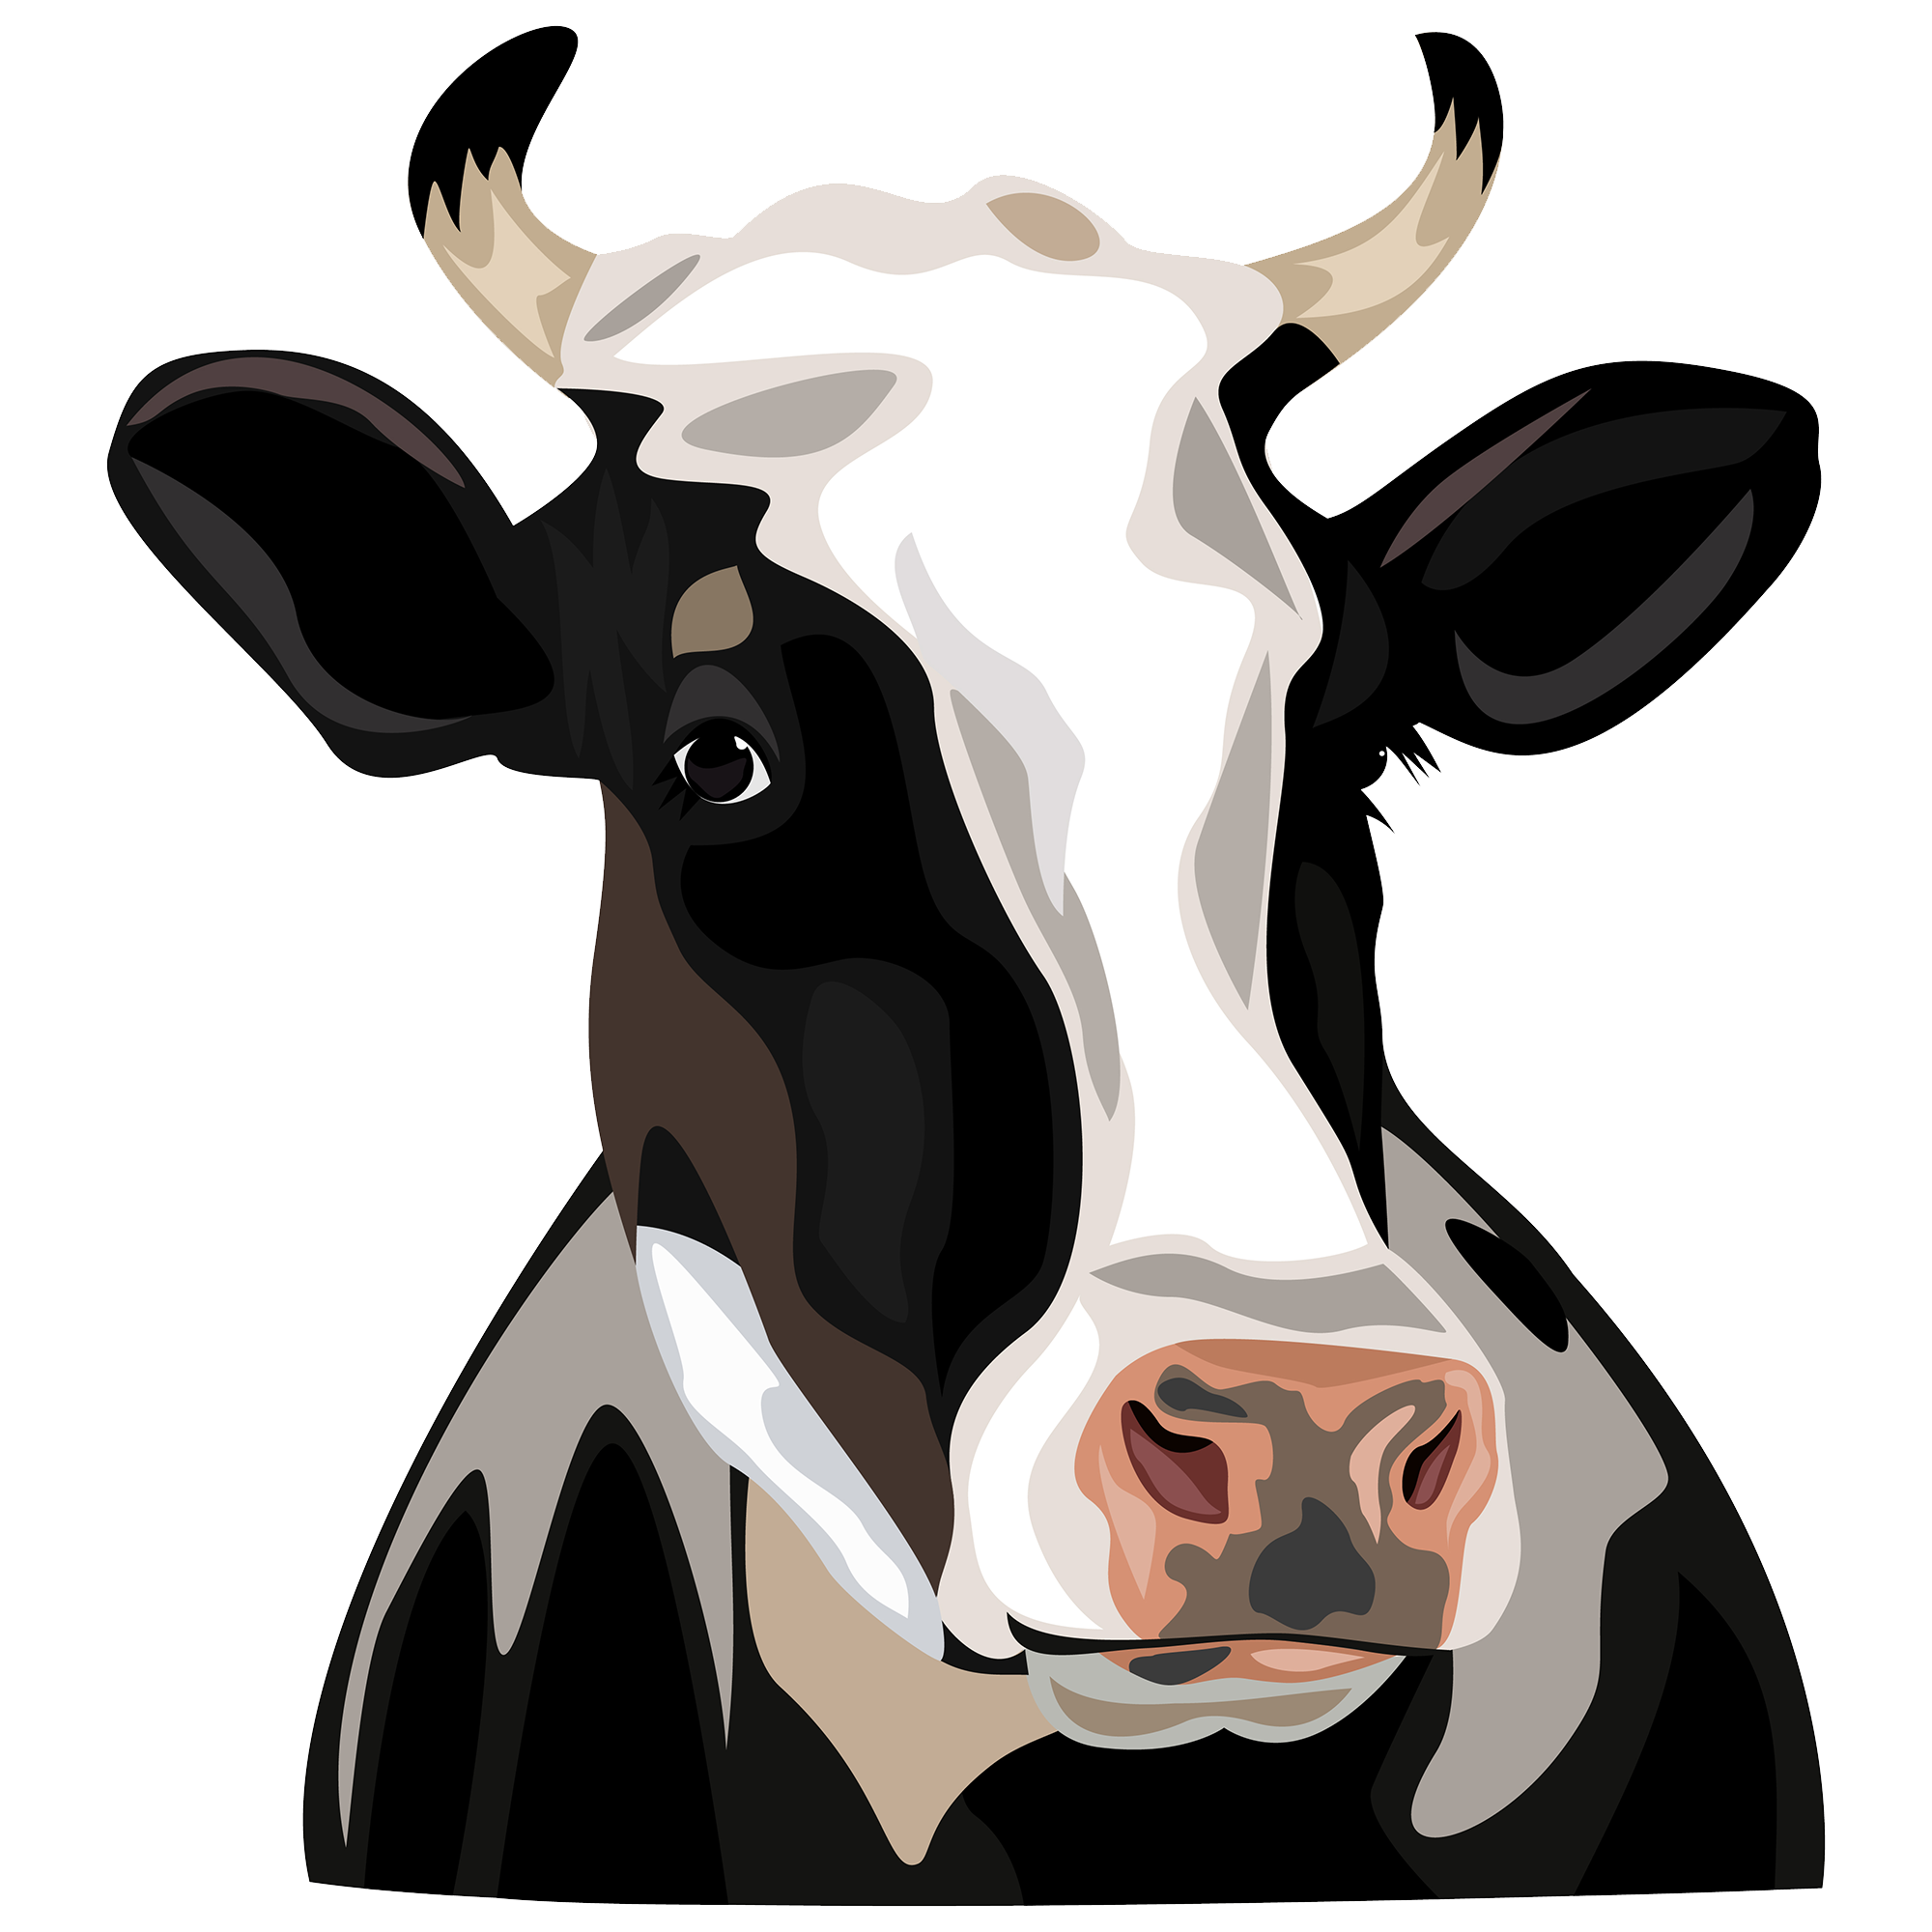 Australian cattle dog clipart clip free Holstein Friesian cattle Clip art - Cow Head 2000*2000 transprent ... clip free